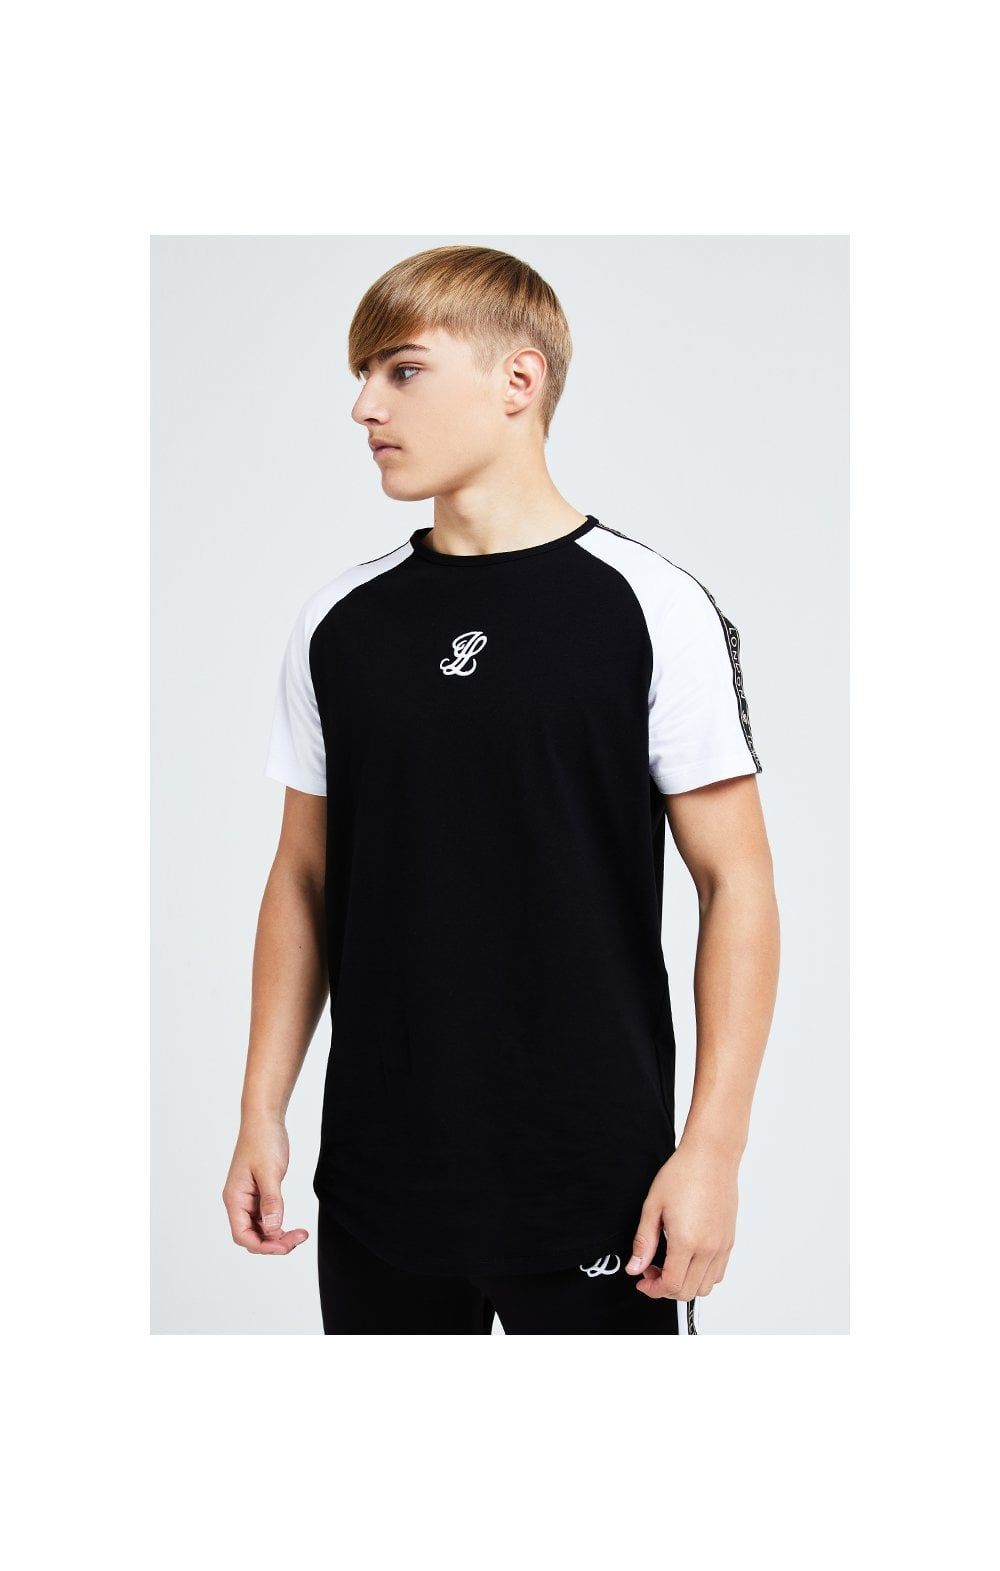 Load image into Gallery viewer, Illusive London Diverge Raglan Tee - Black Gold & White (2)